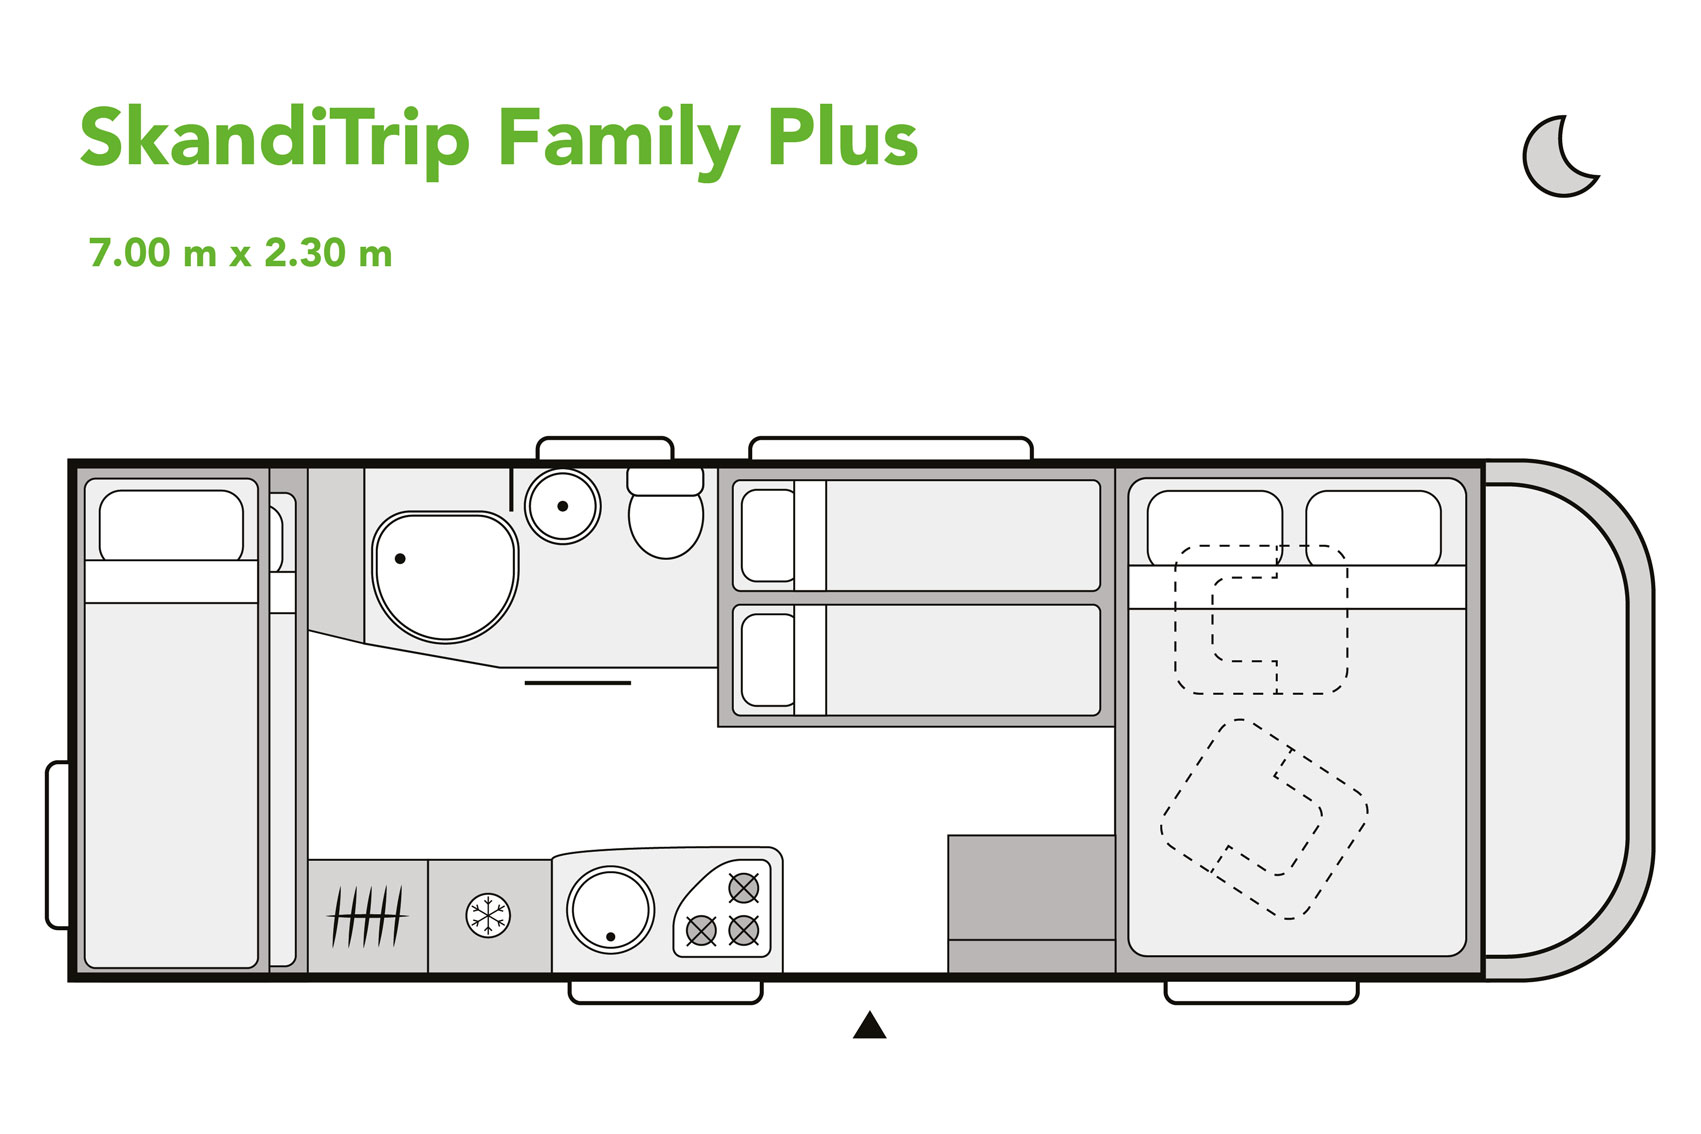 SkandiTrip family plus motorhome daytime blueprint